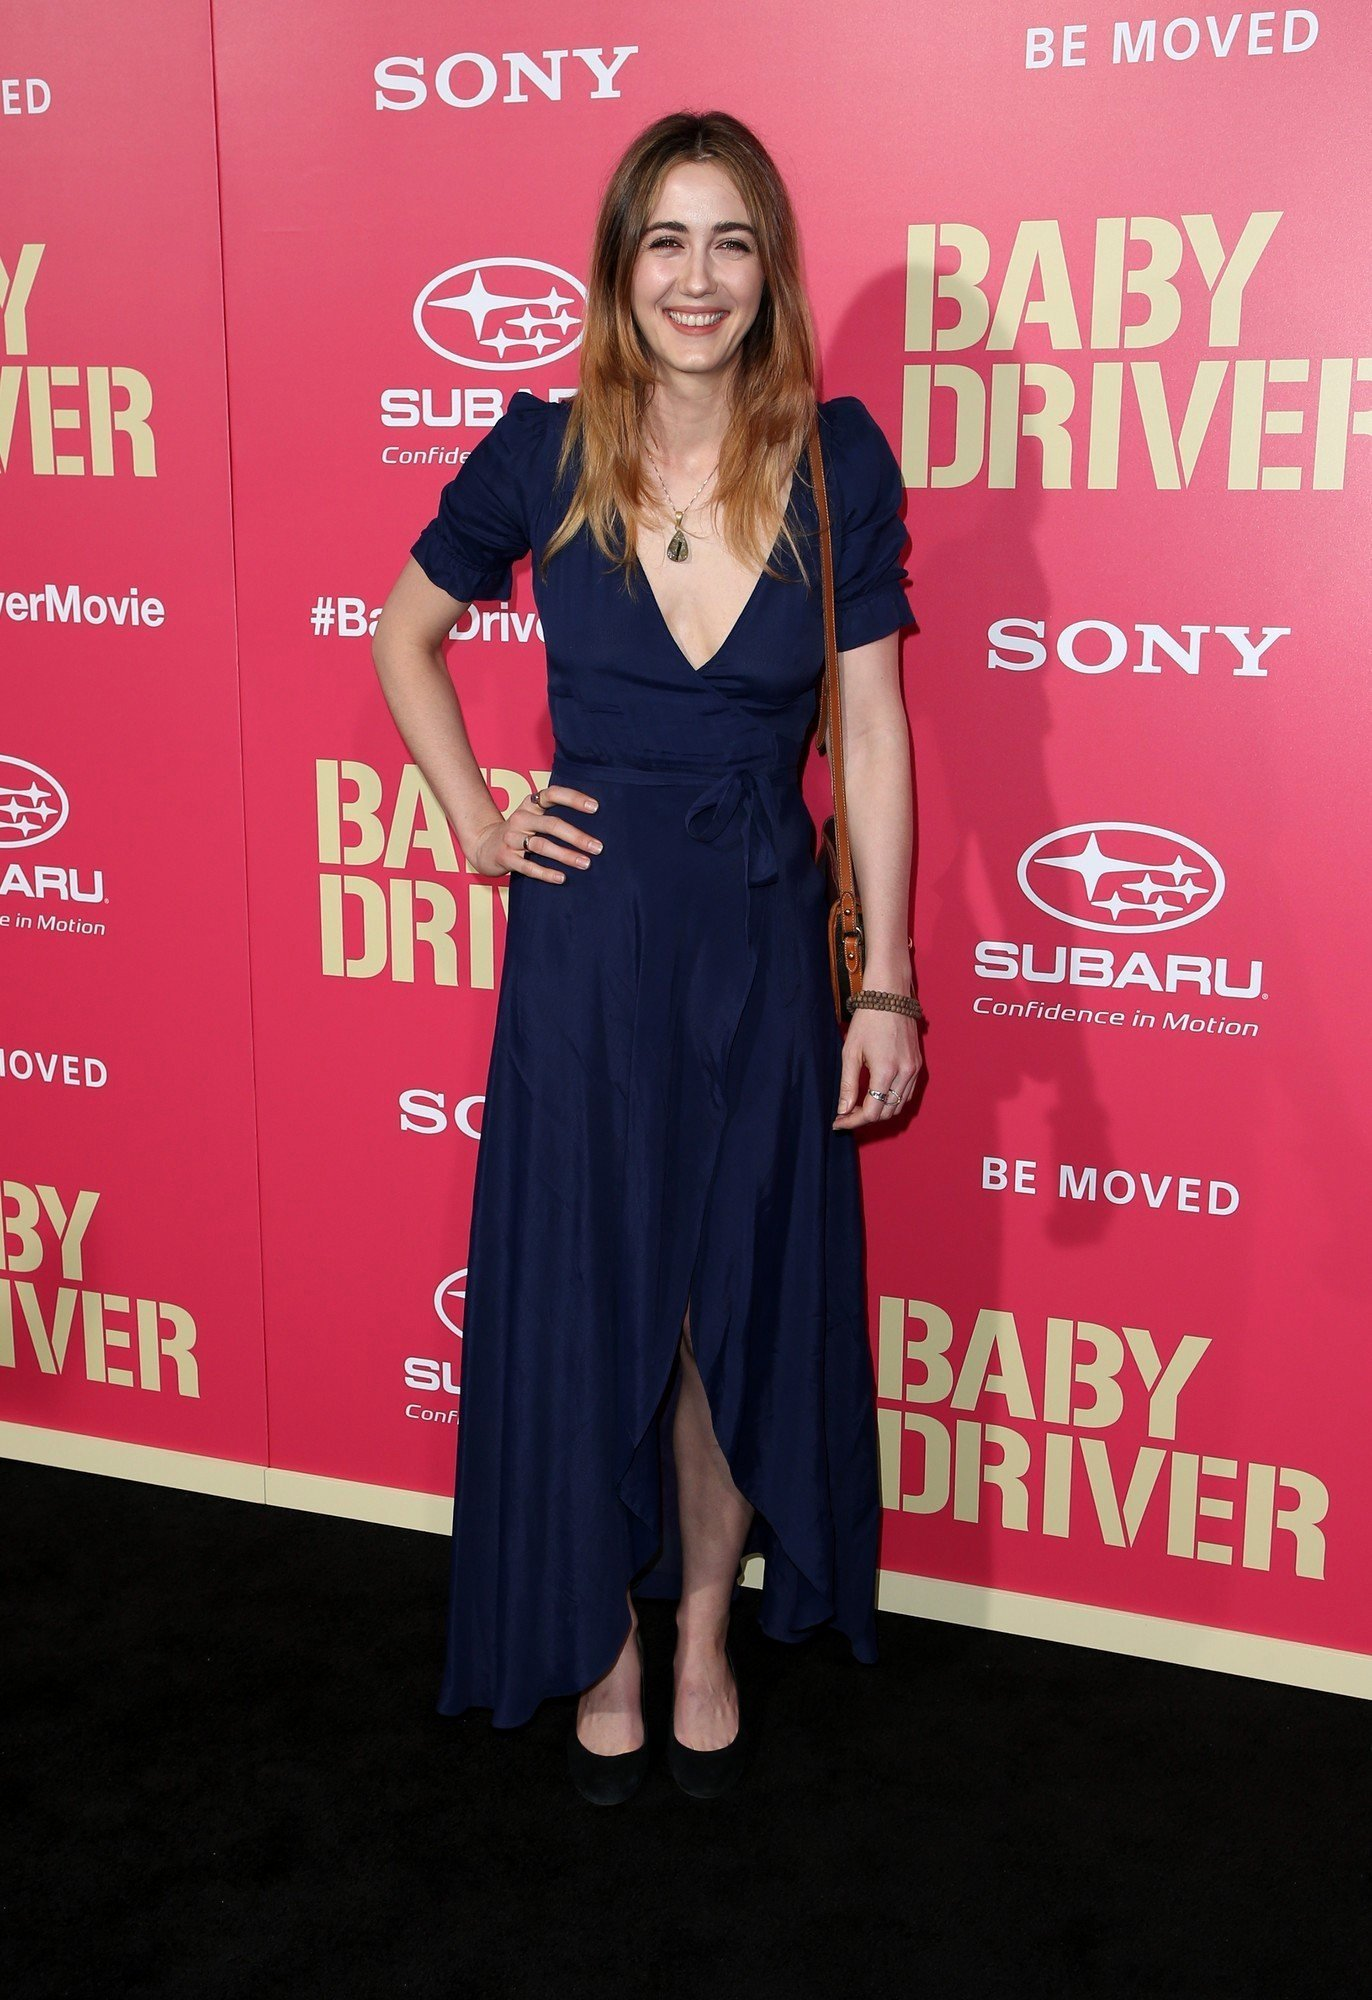 Watch Madeline zima baby driver premiere in los angeles video